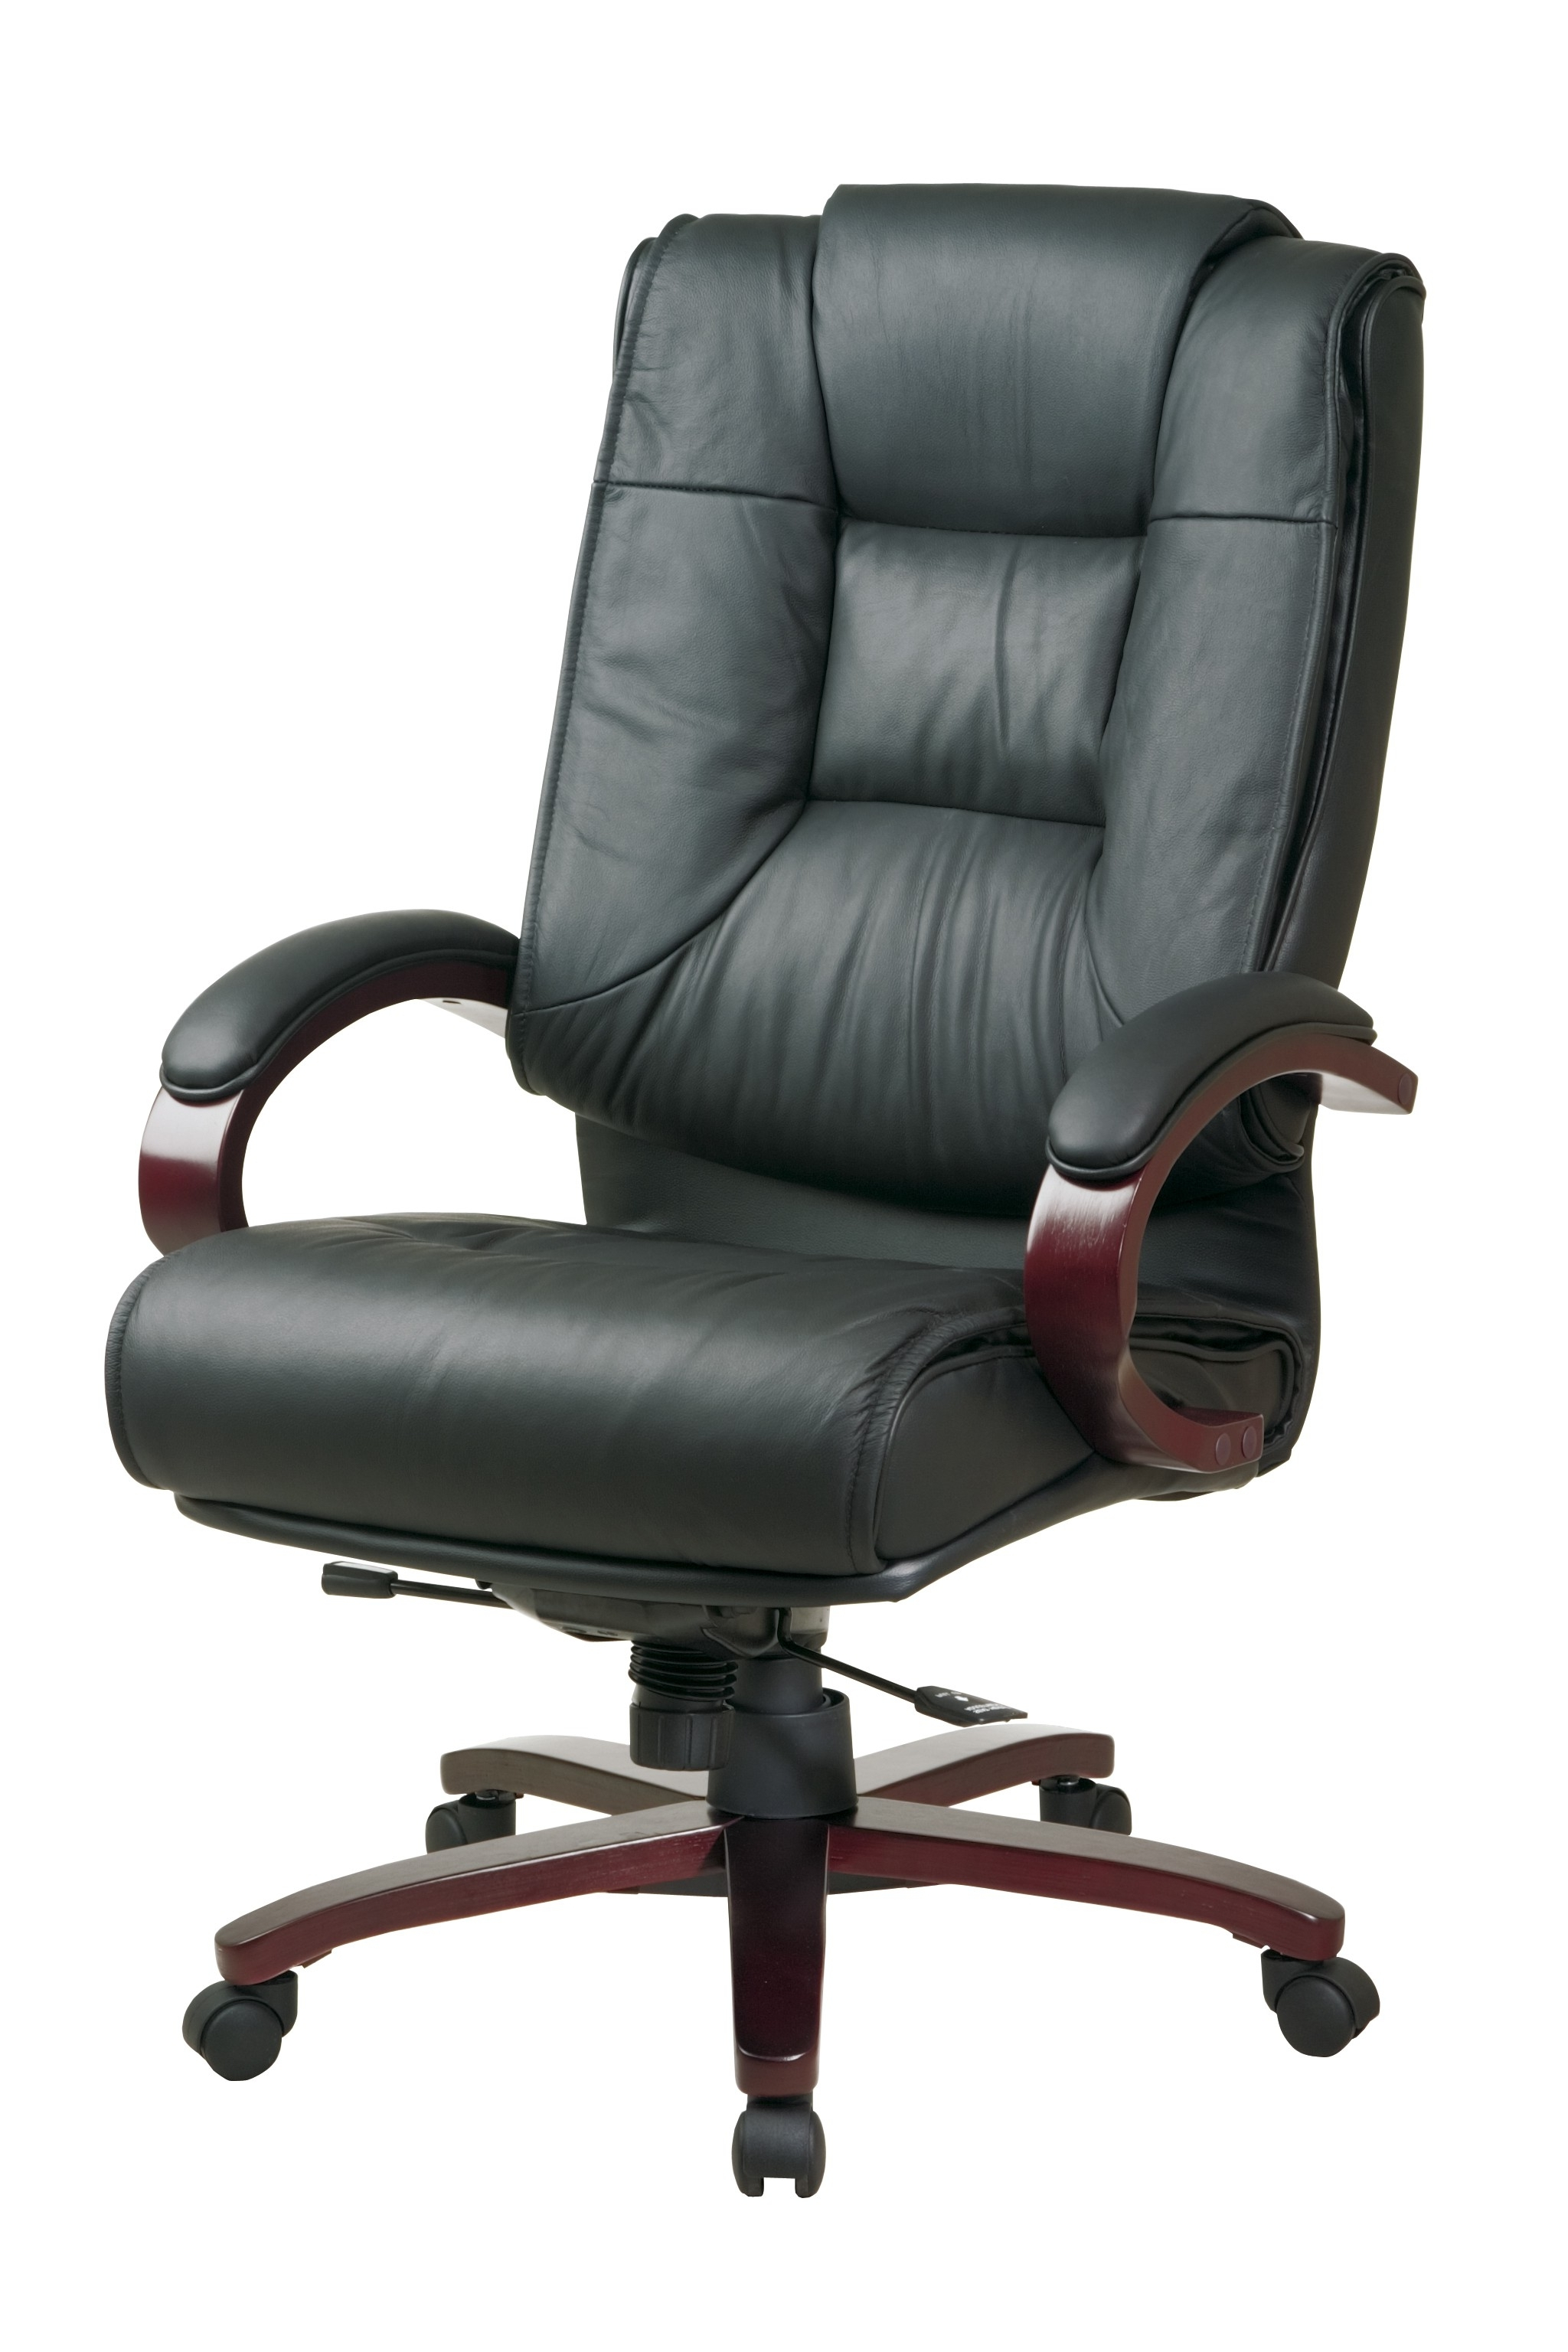 wood and leather executive office chairs contemporary dining chair showing gallery of view 6 most recently released ideas with black inside